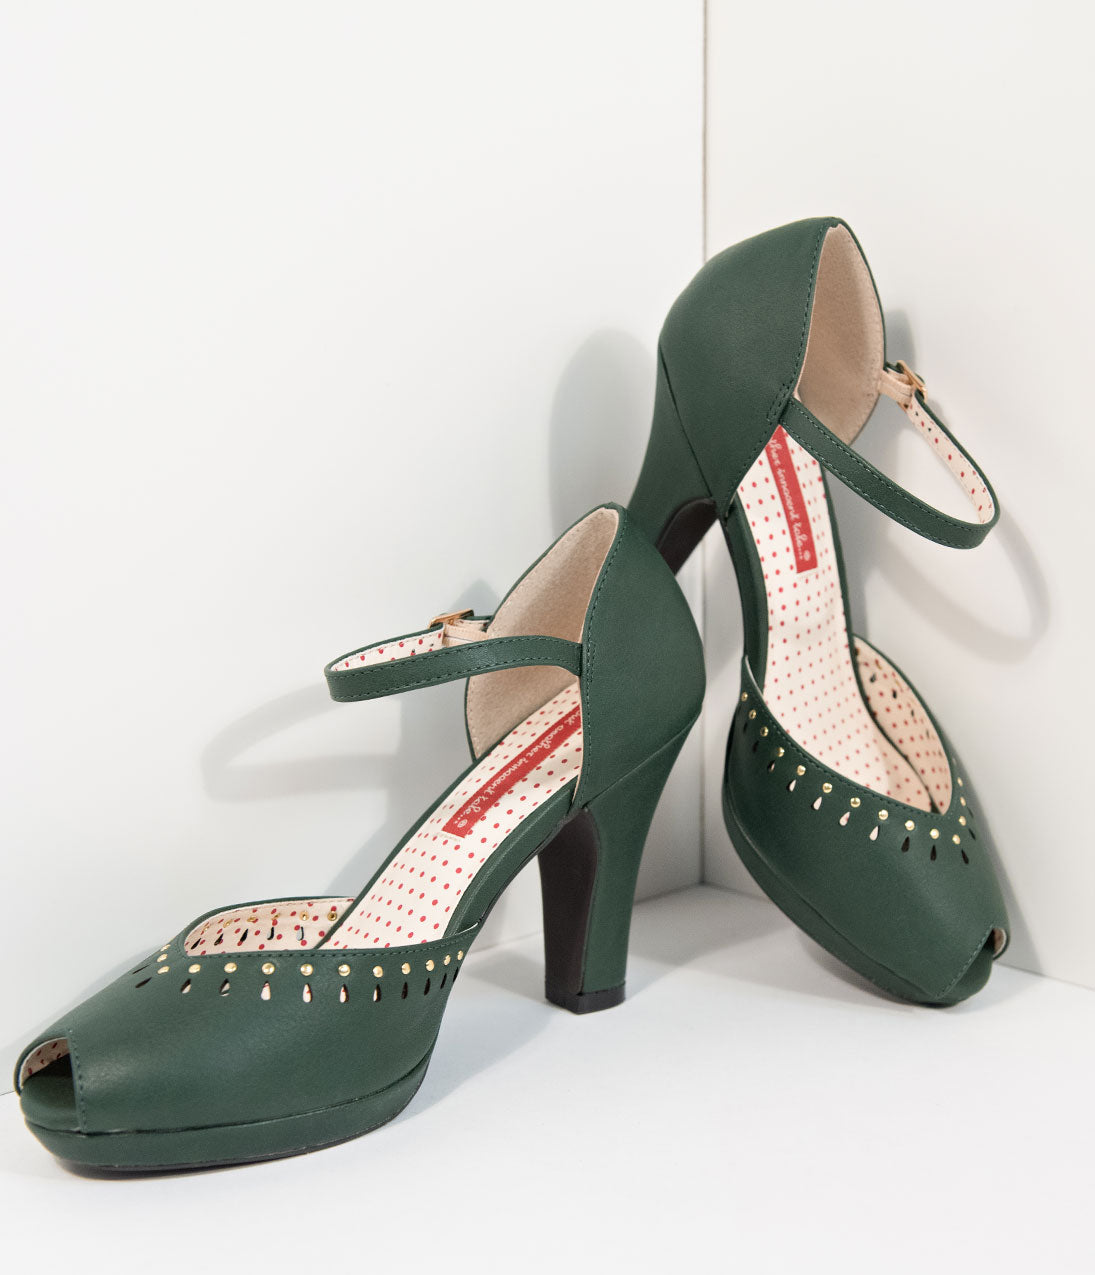 1940s Style Shoes, 40s Shoes B.a.i.t. 1940S Style Green Leatherette Peep Toe Letty Heels $74.00 AT vintagedancer.com